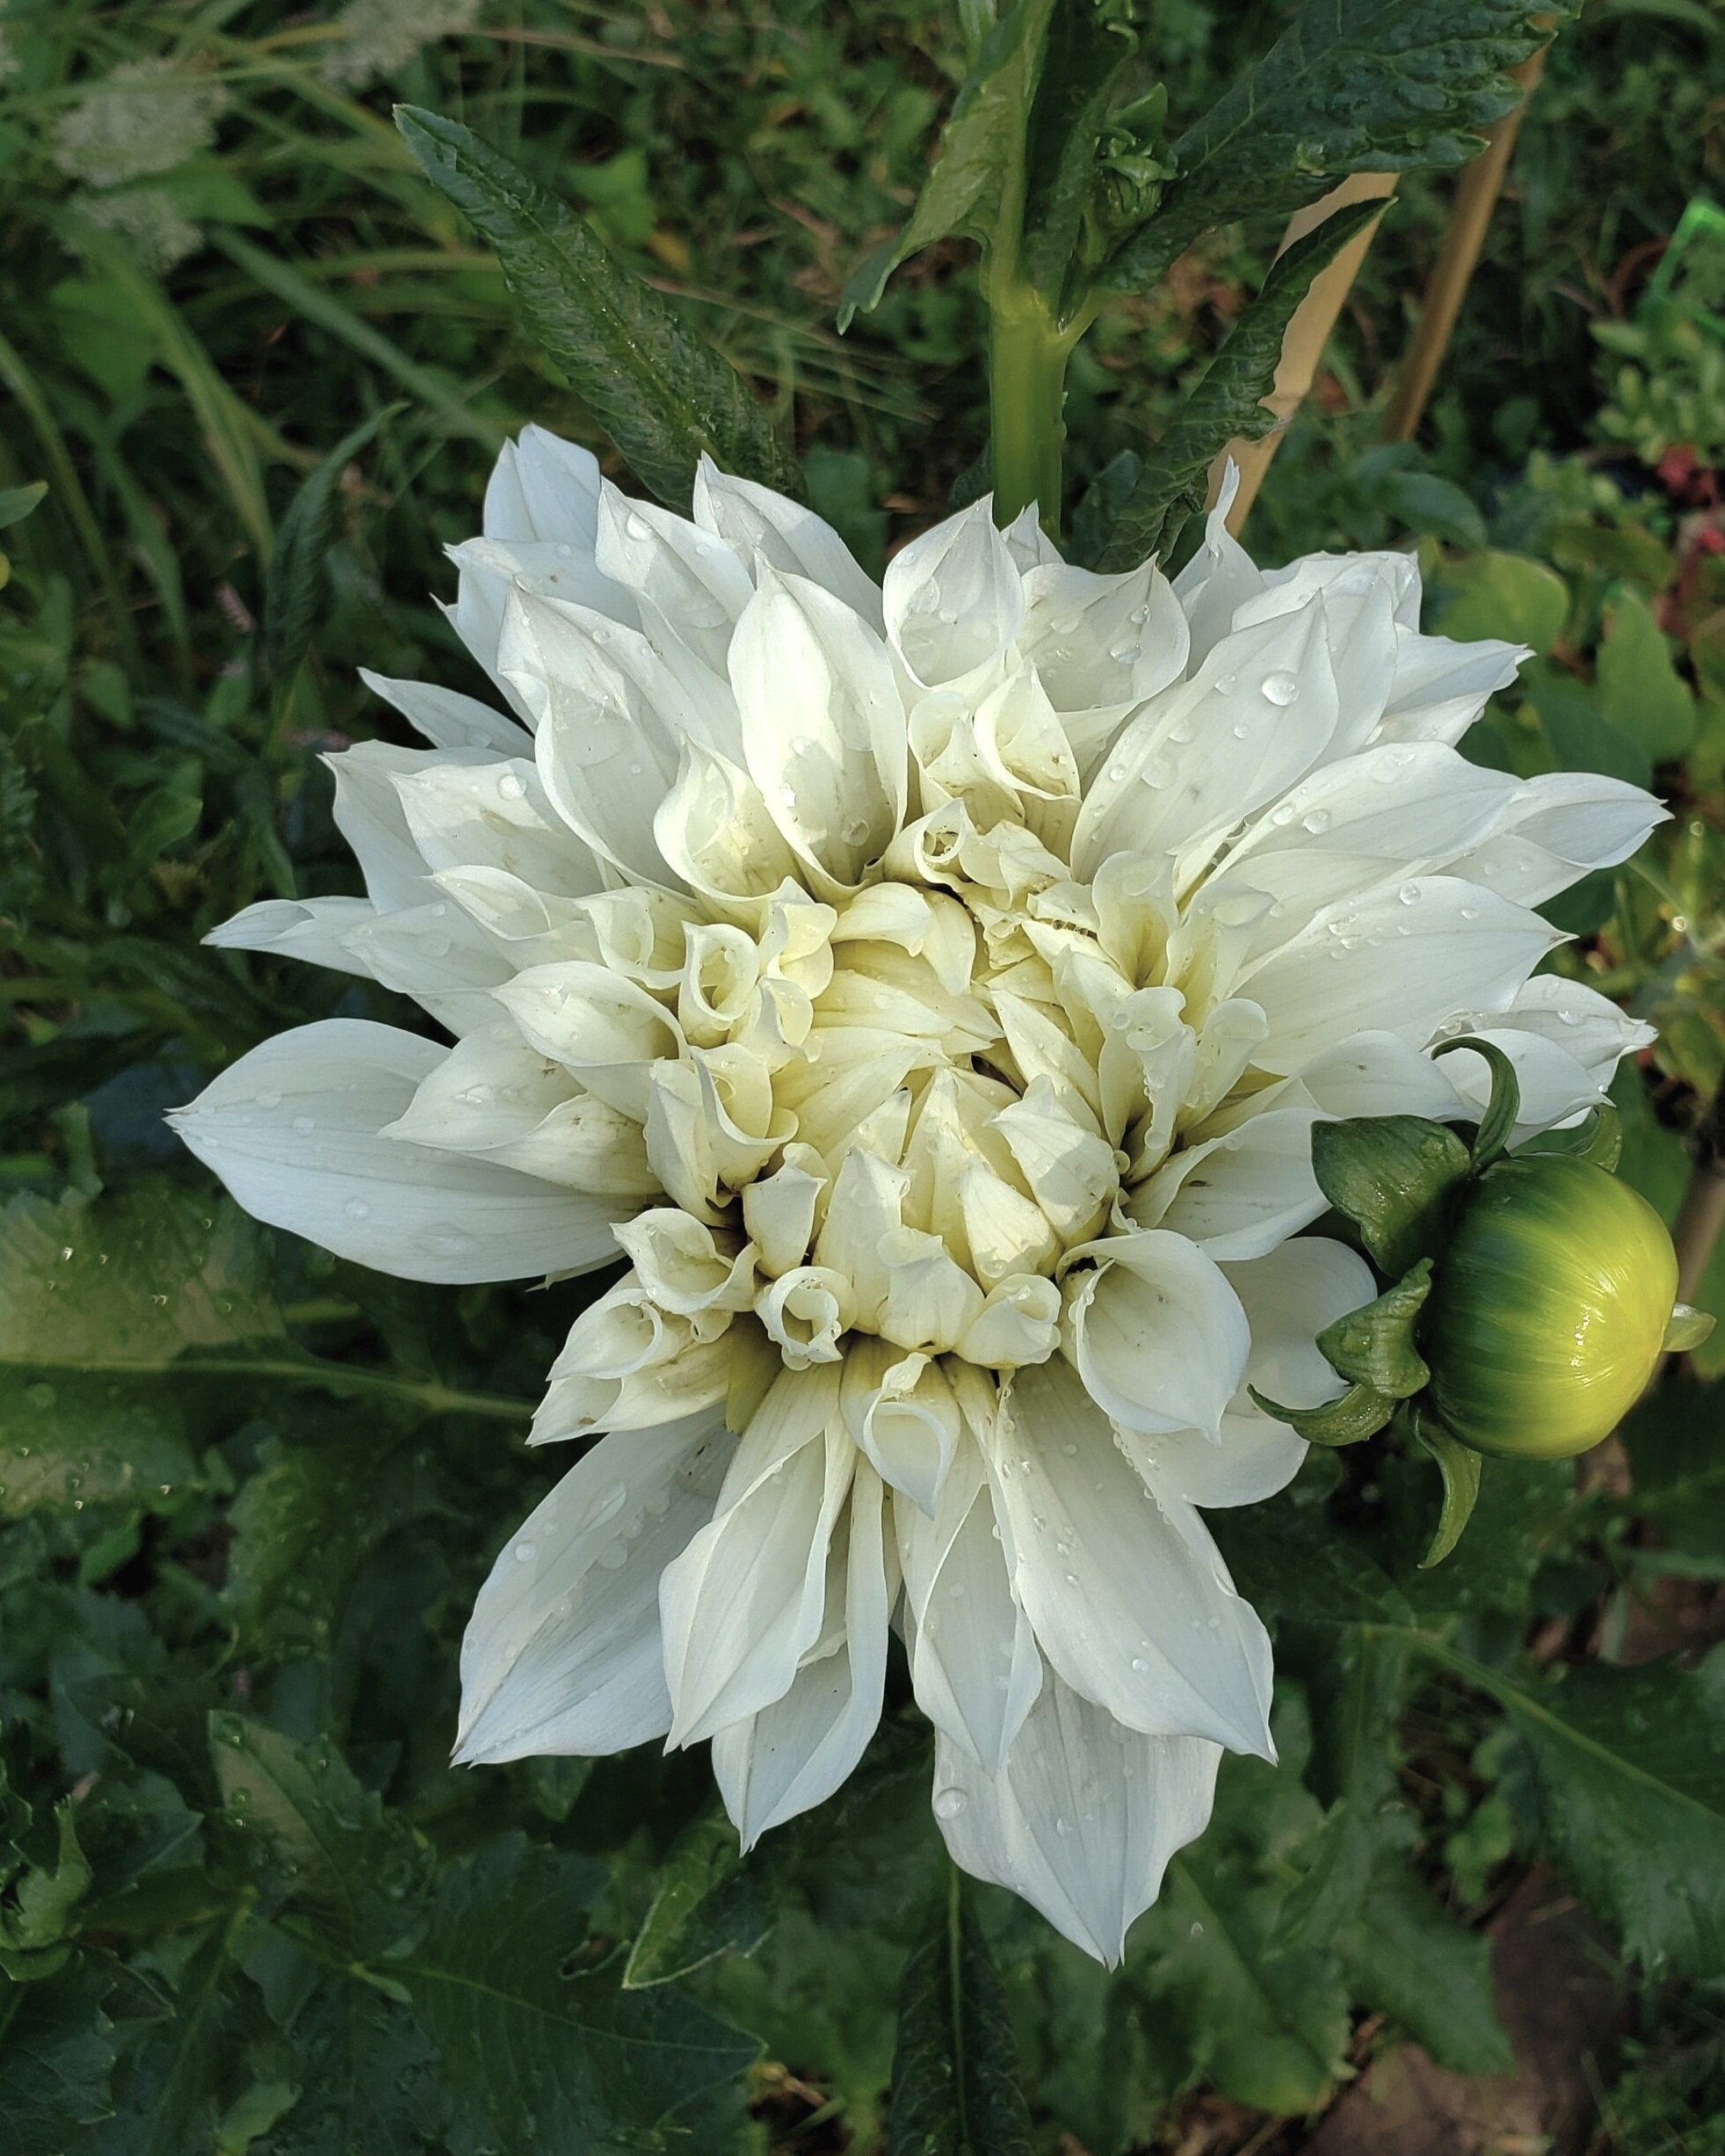 For the First Time! Dahlias in my backyard!